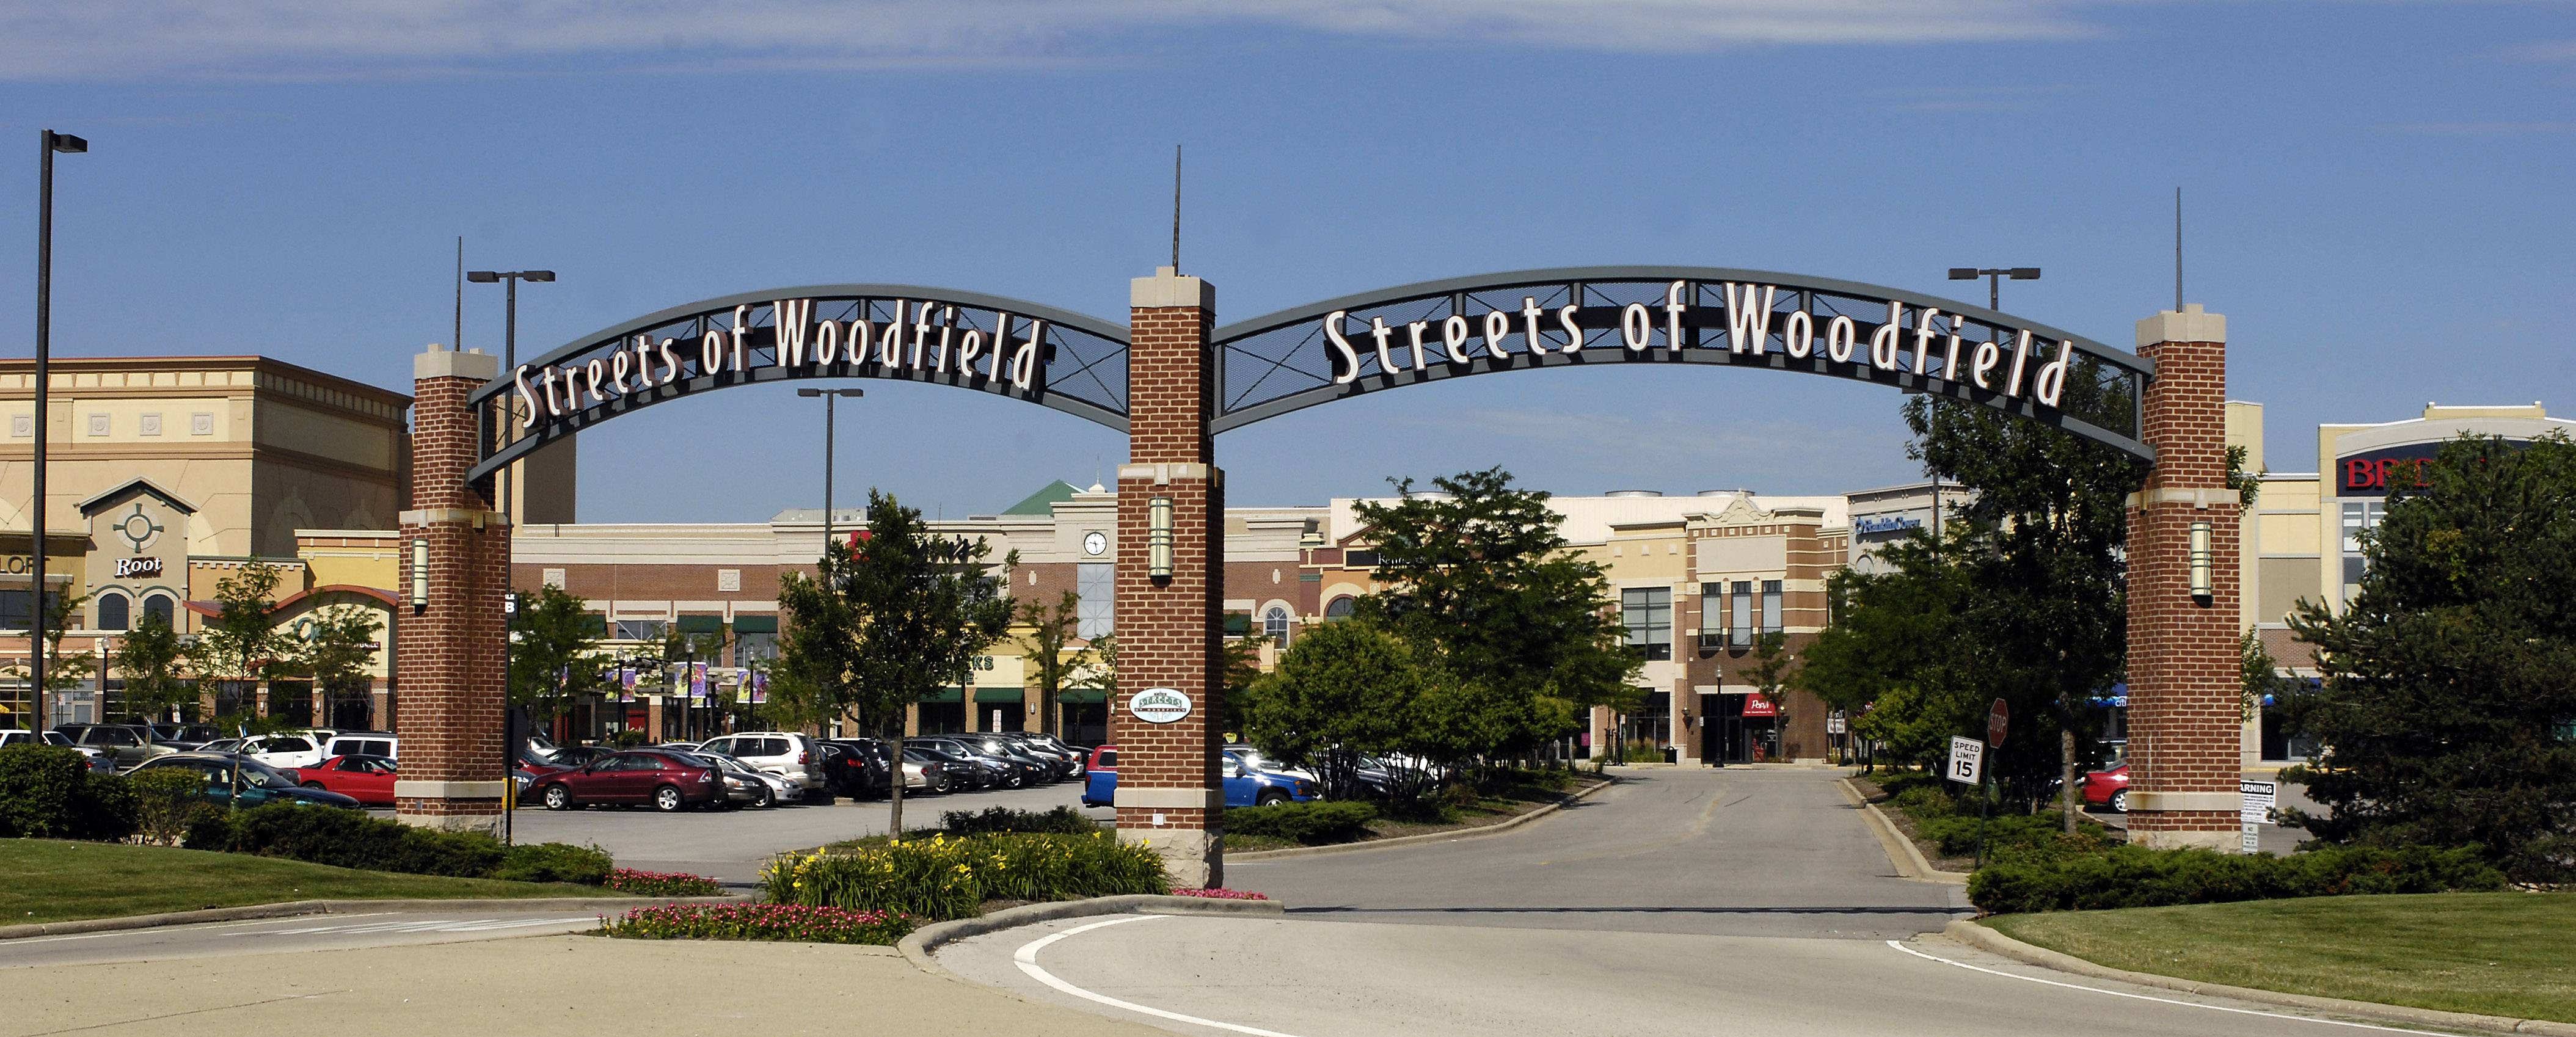 Schaumburg has opted out of Cook County's minimum wage and sick-leave laws, which were expected to particularly hurt stores and restaurants such as those at Streets of Woodfield shopping center.